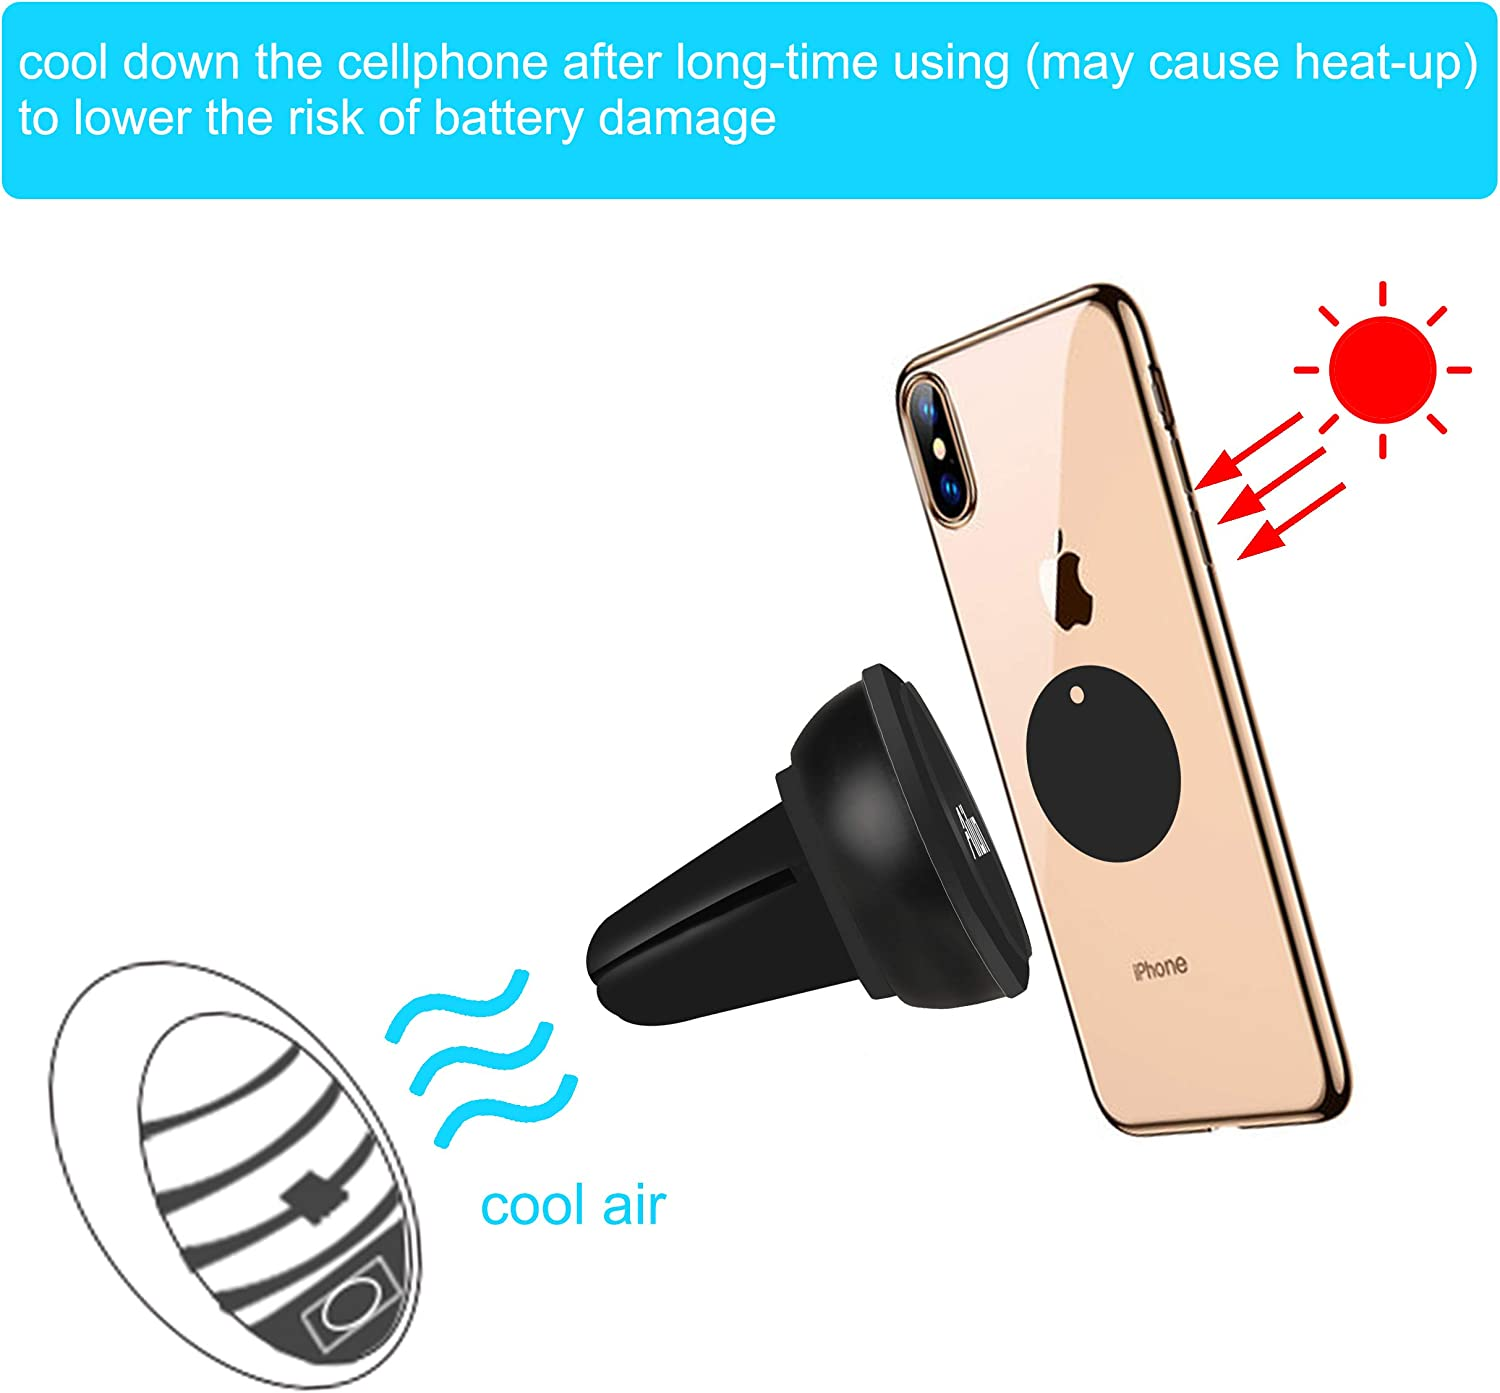 Ailun Car Phone Mount Round Magnet Mount Air Vent Magnetic Holder for iPhone 11//11 Pro//11 Pro Max//X Xs XR Xs Max Galaxy s20 s20 S20Ultra S10 Plus Note 10 and Other Smartphones Tablets Black